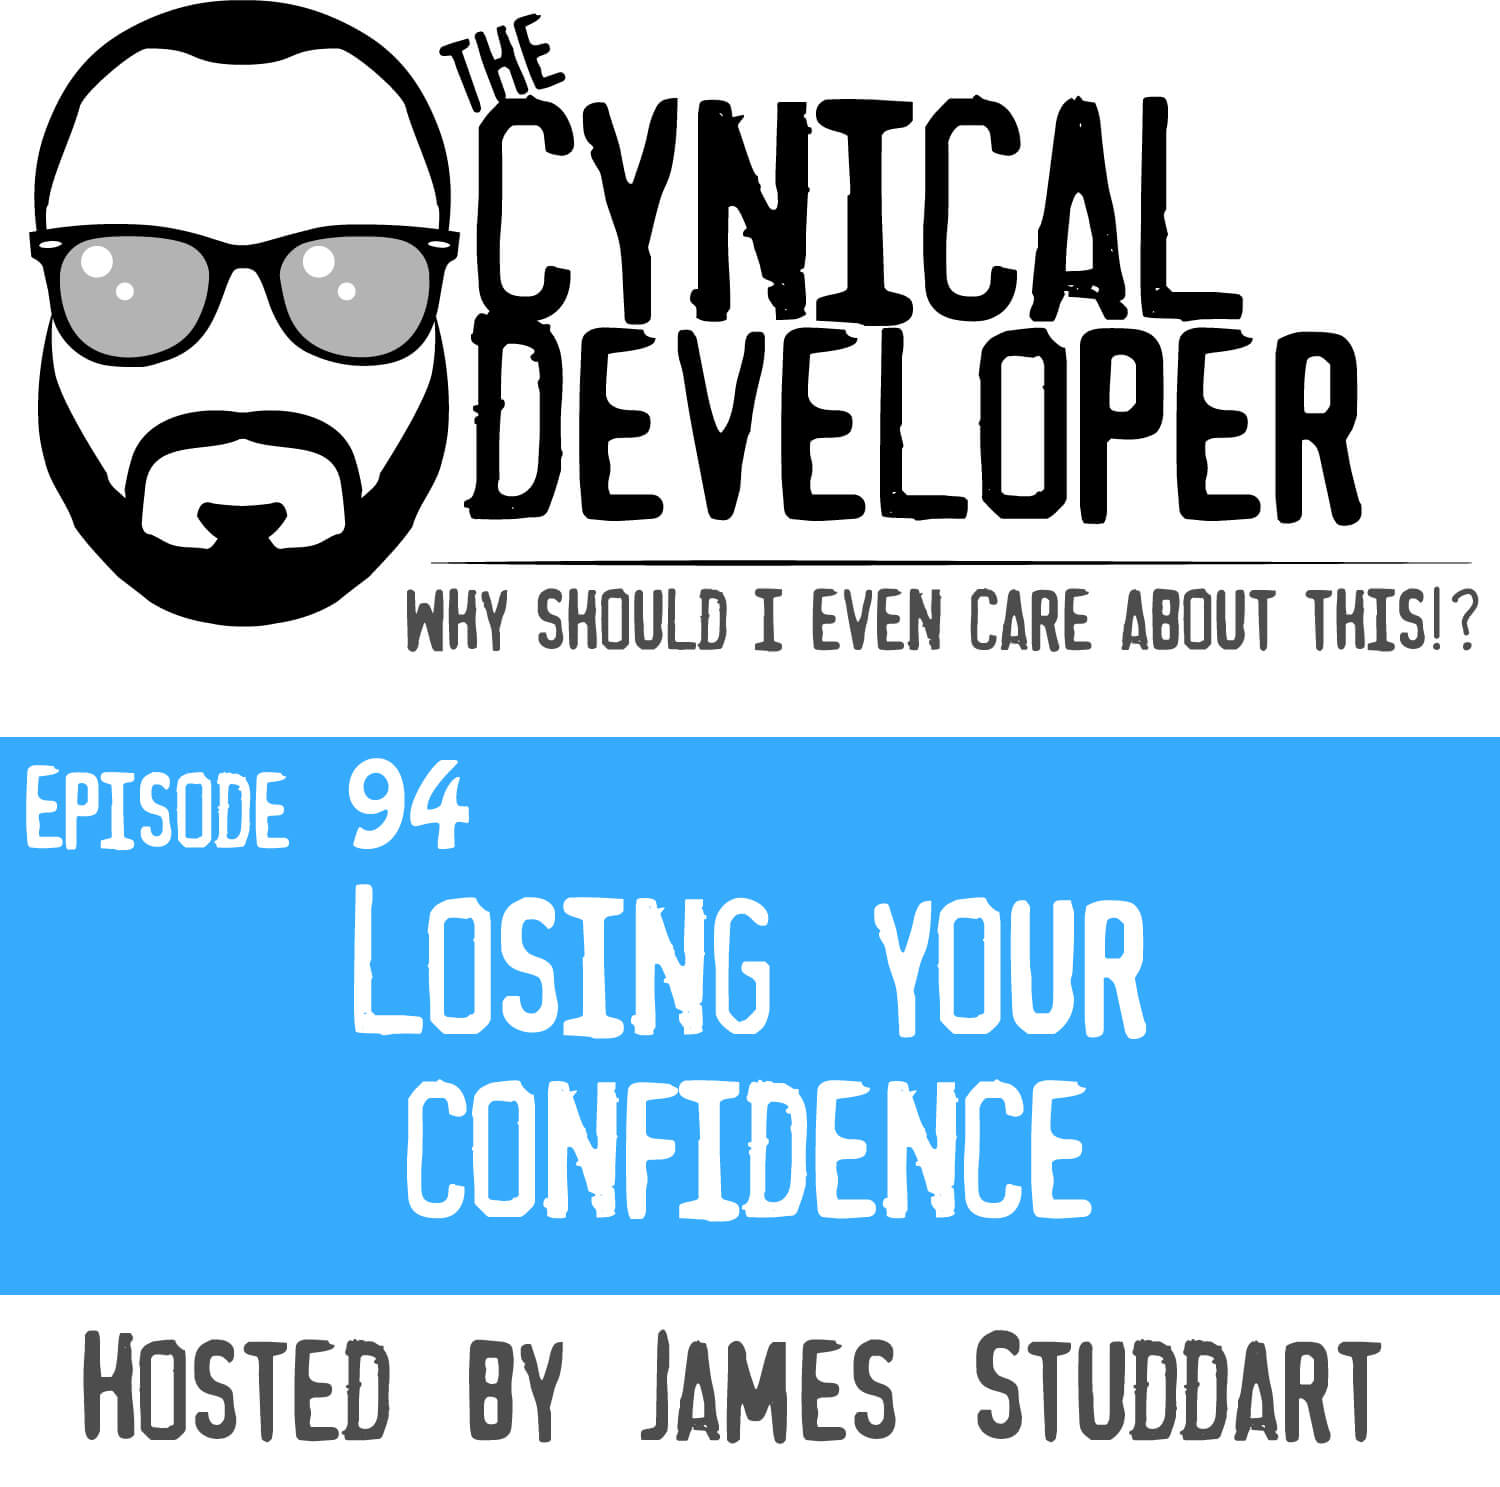 Episode 94 - Losing your confidence